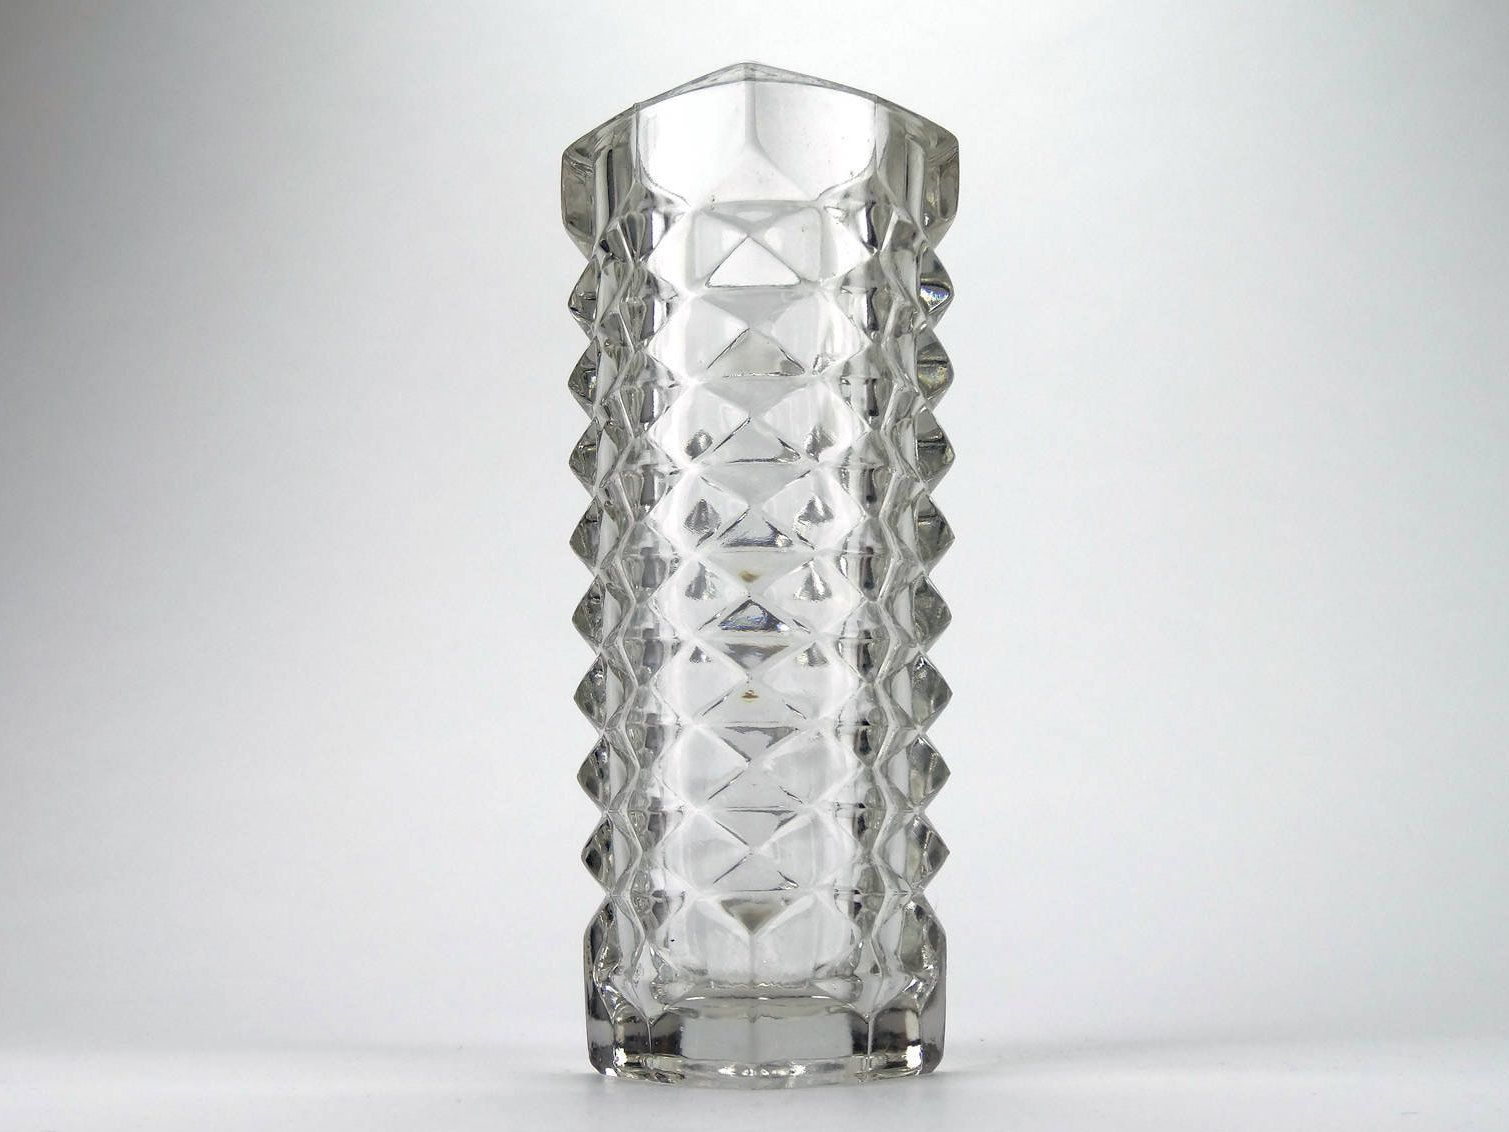 Vintage bohemian clear glass vase by jiri zejmon pressed glass glass vintage bohemian clear glass vase reviewsmspy